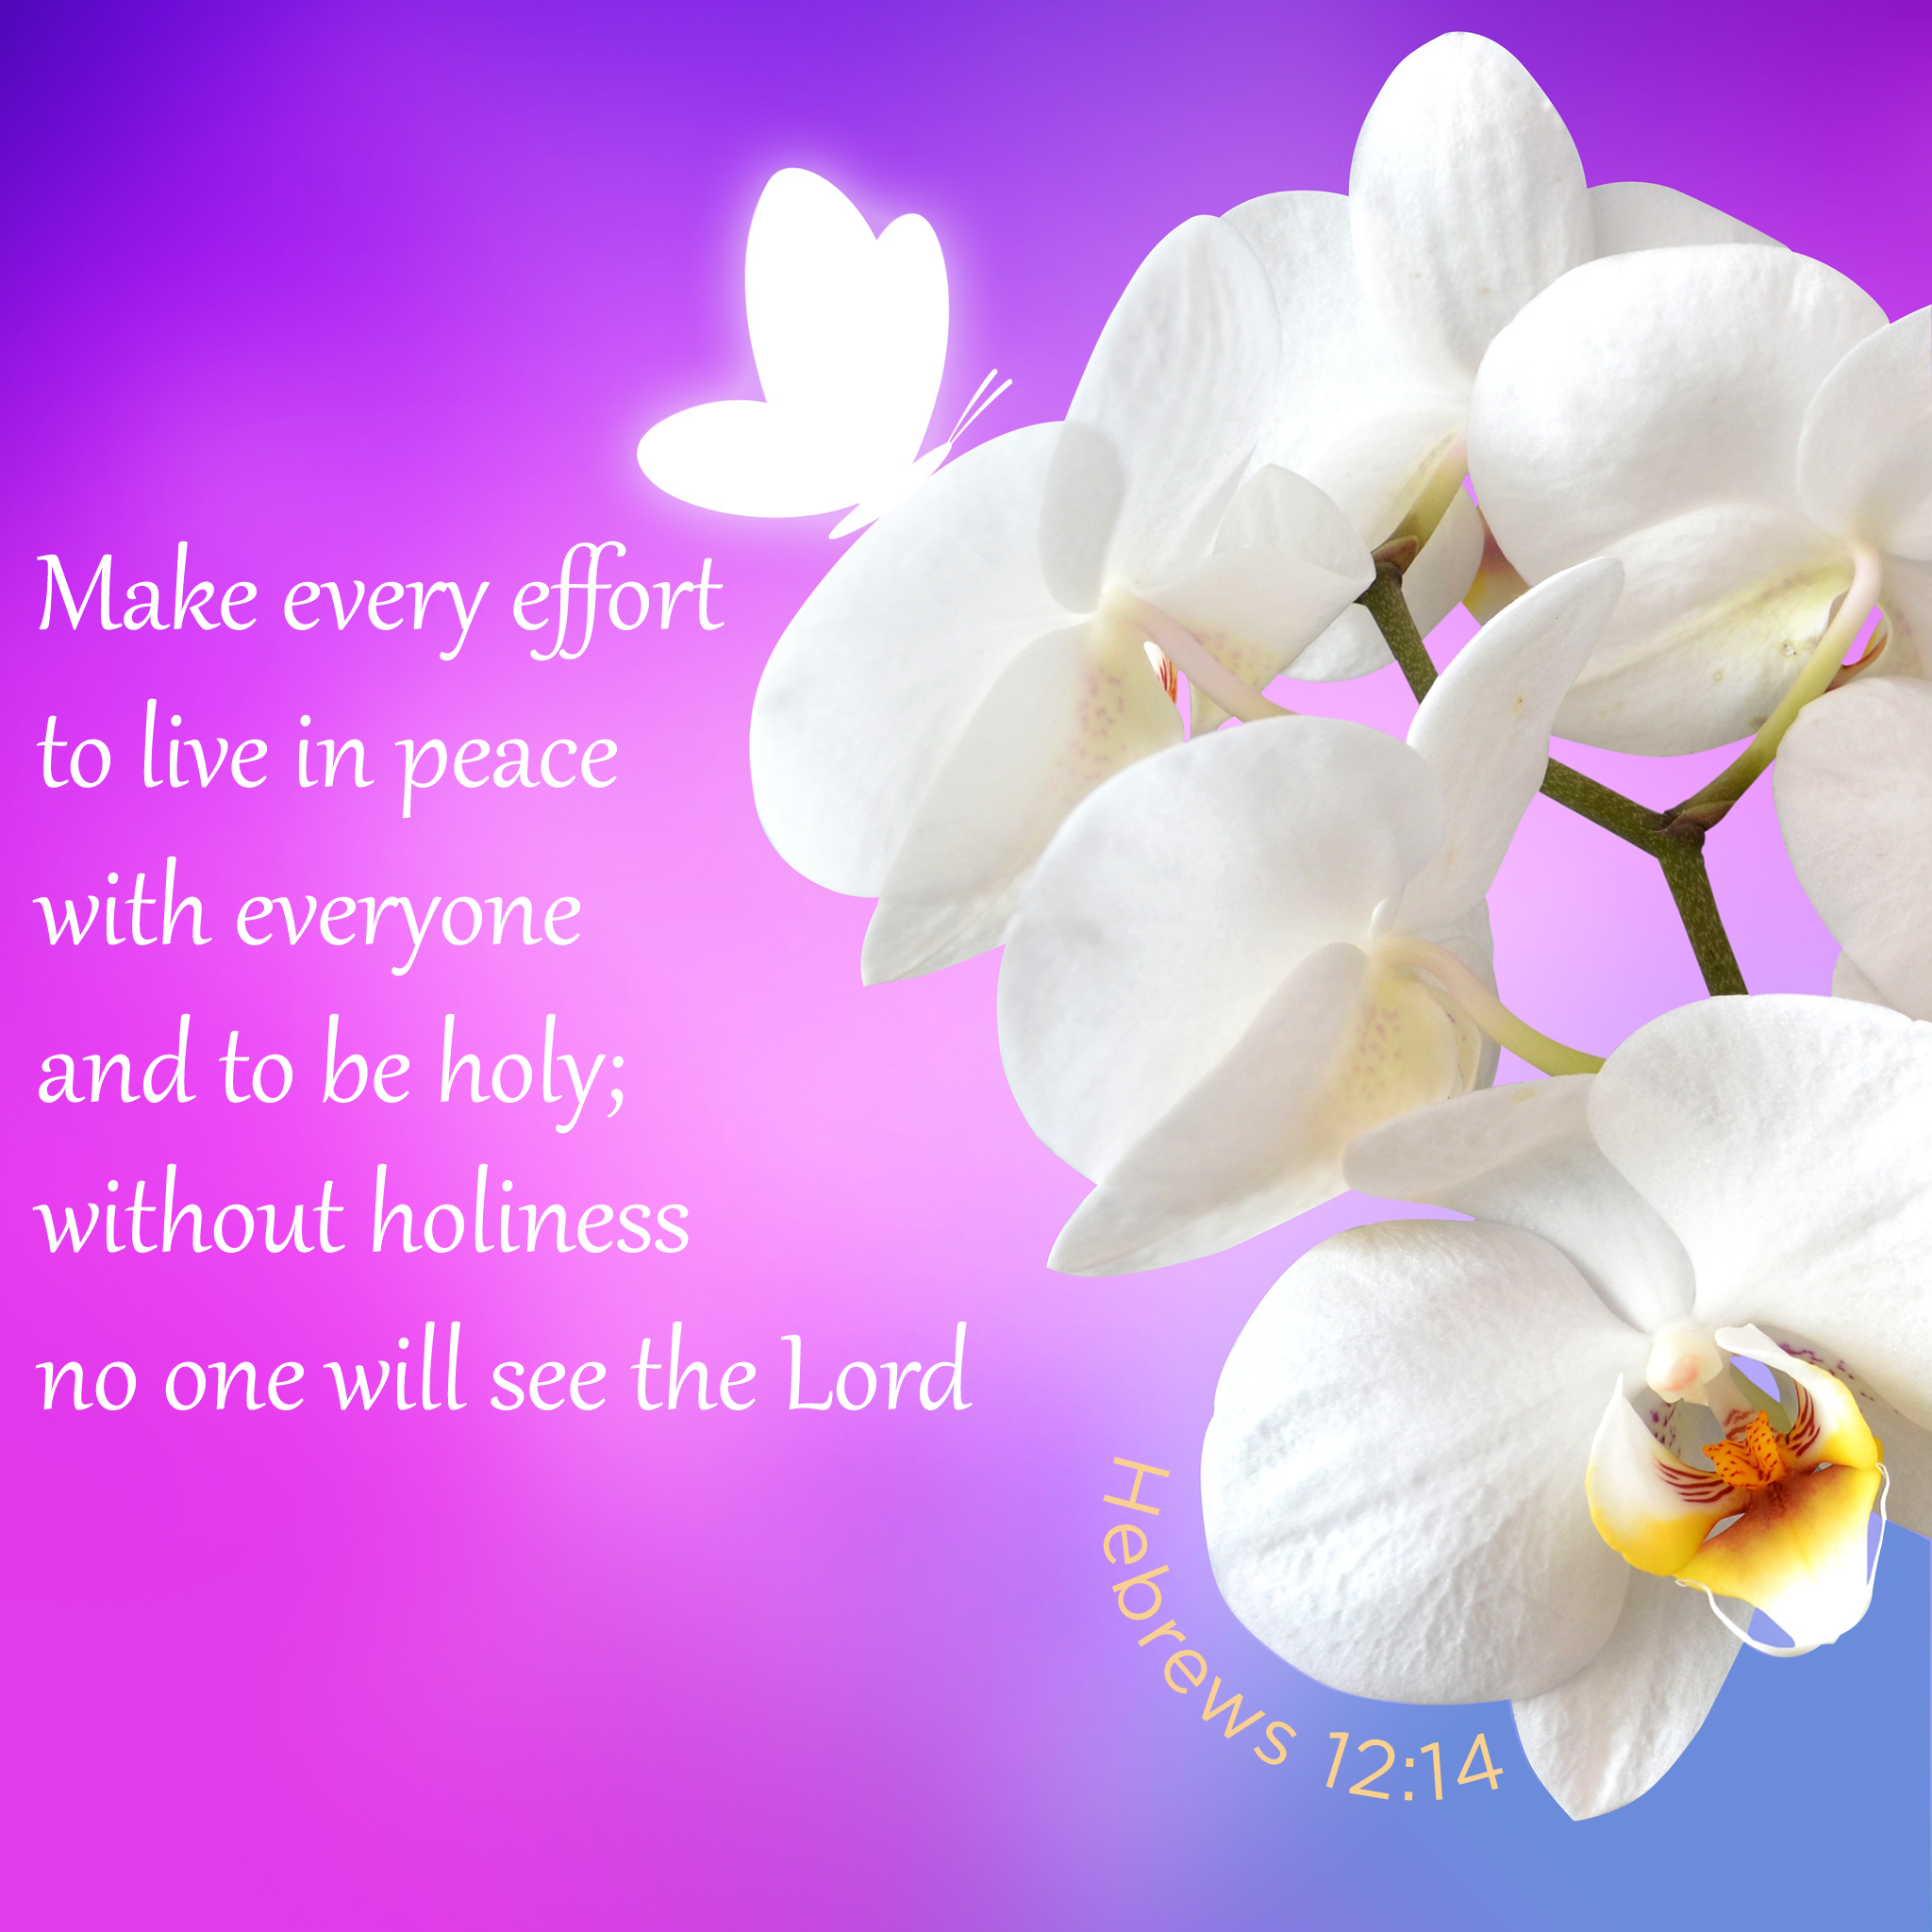 Hebrews 12:14 scripture picture